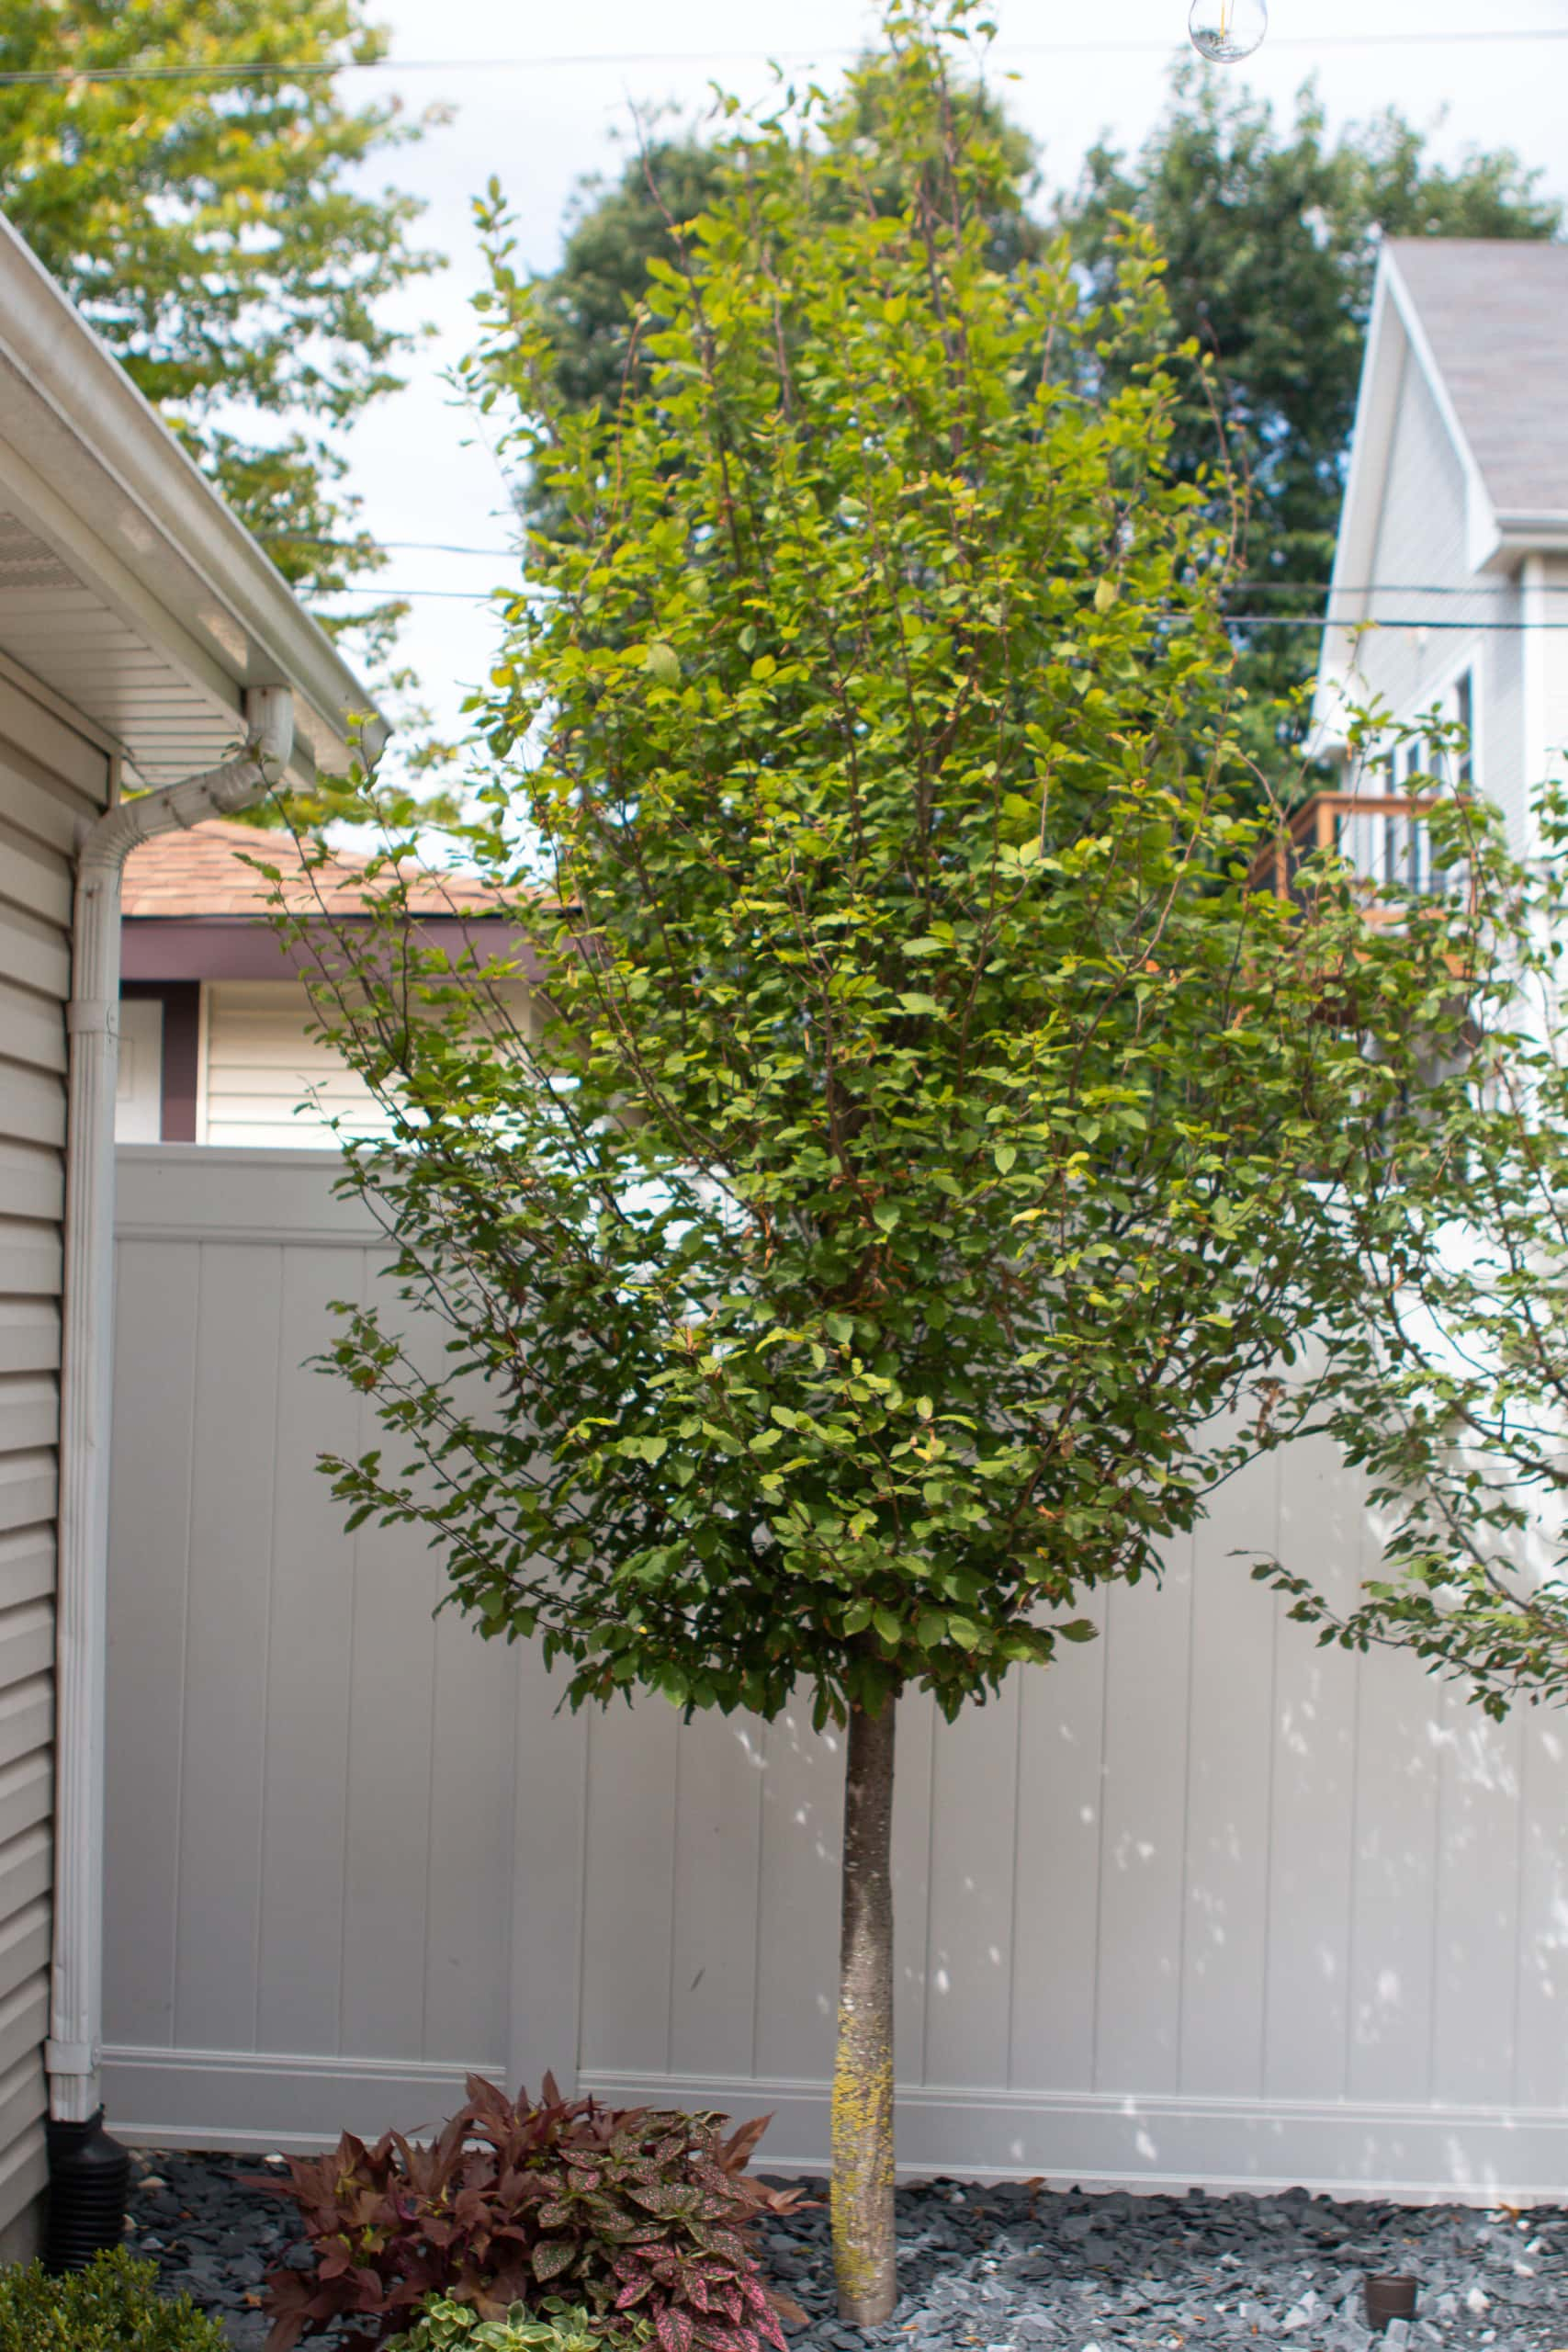 Our new trees in the backyard